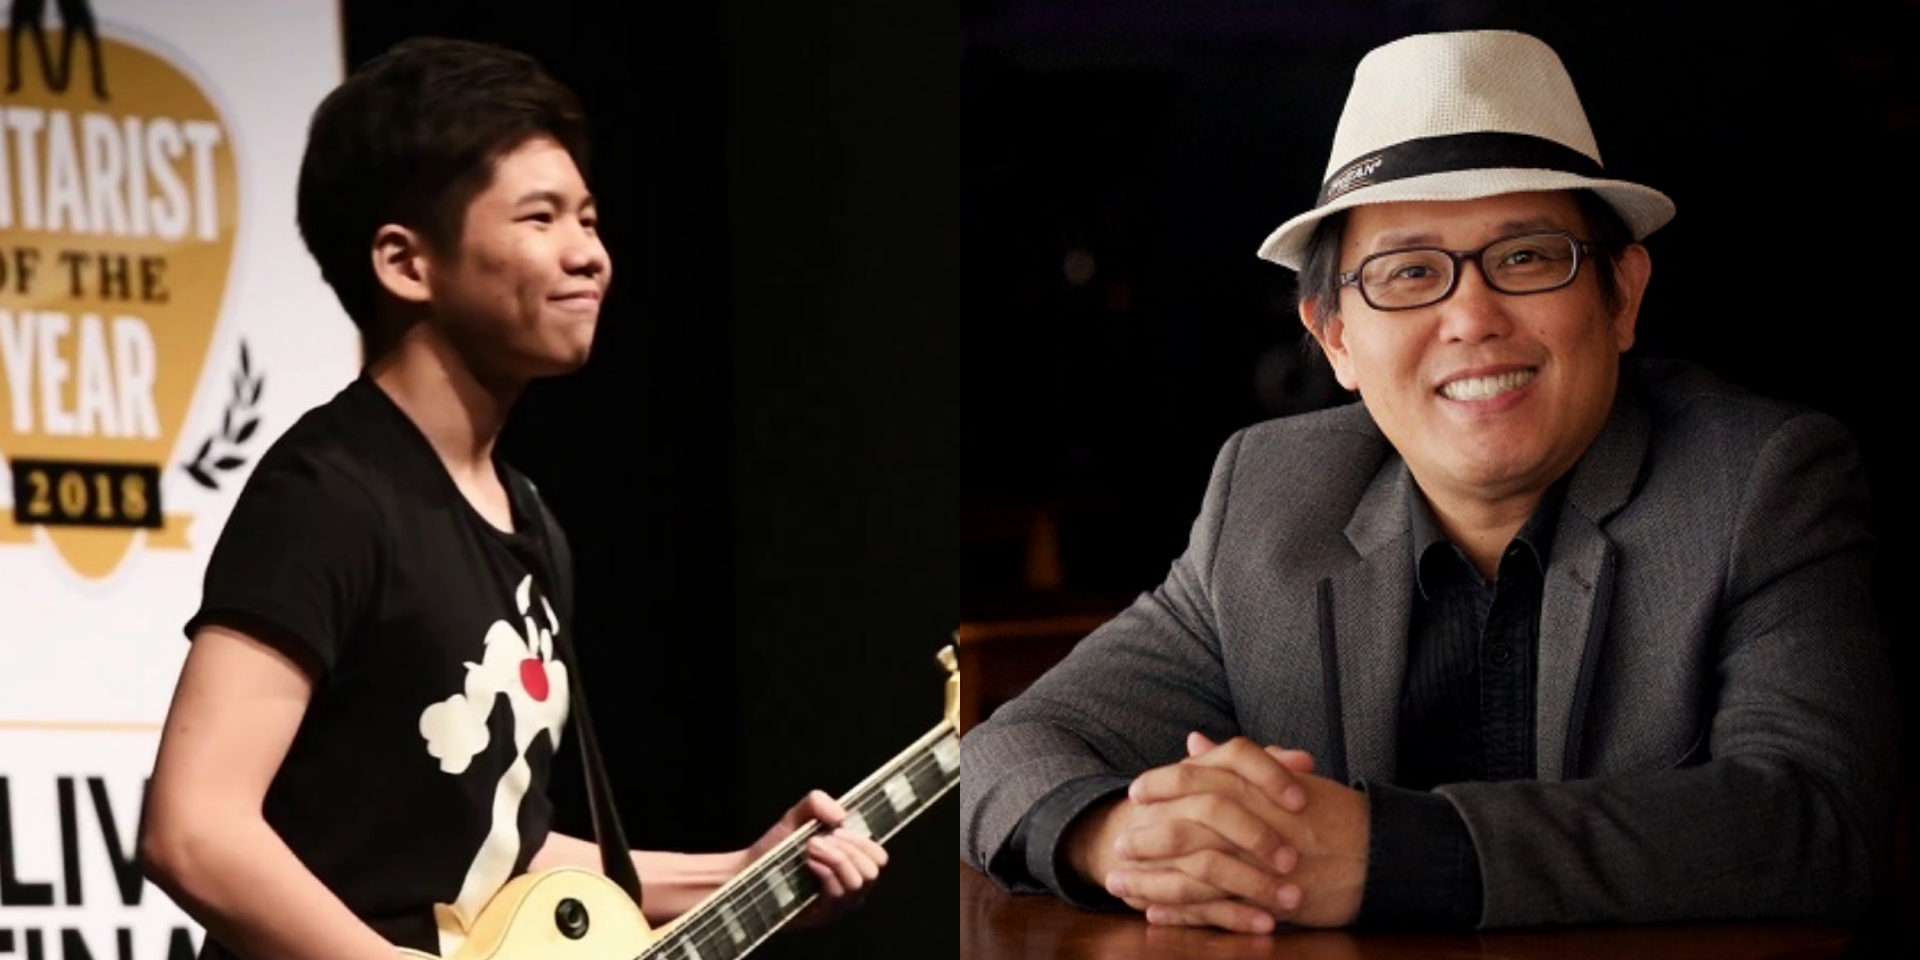 Alex Hooi and Danny Loong to join the massive West Australian Guitar Festival line-up